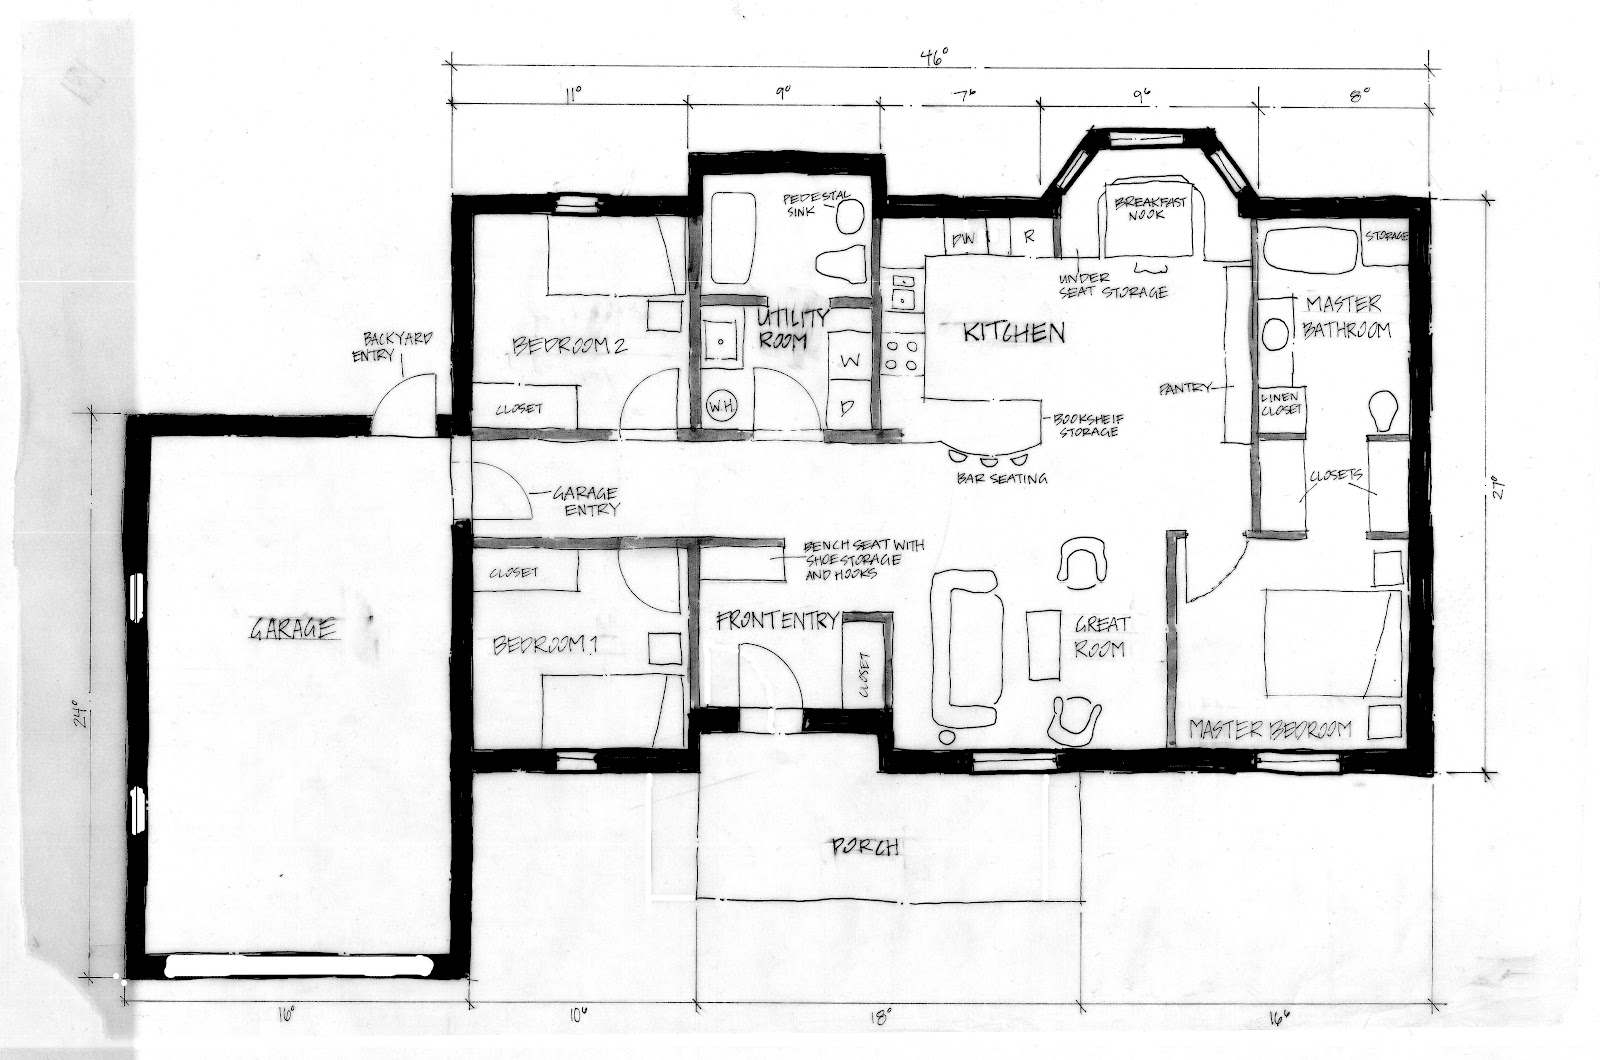 Taylor brock design portfolio habitat for humanity Aging in place floor plans